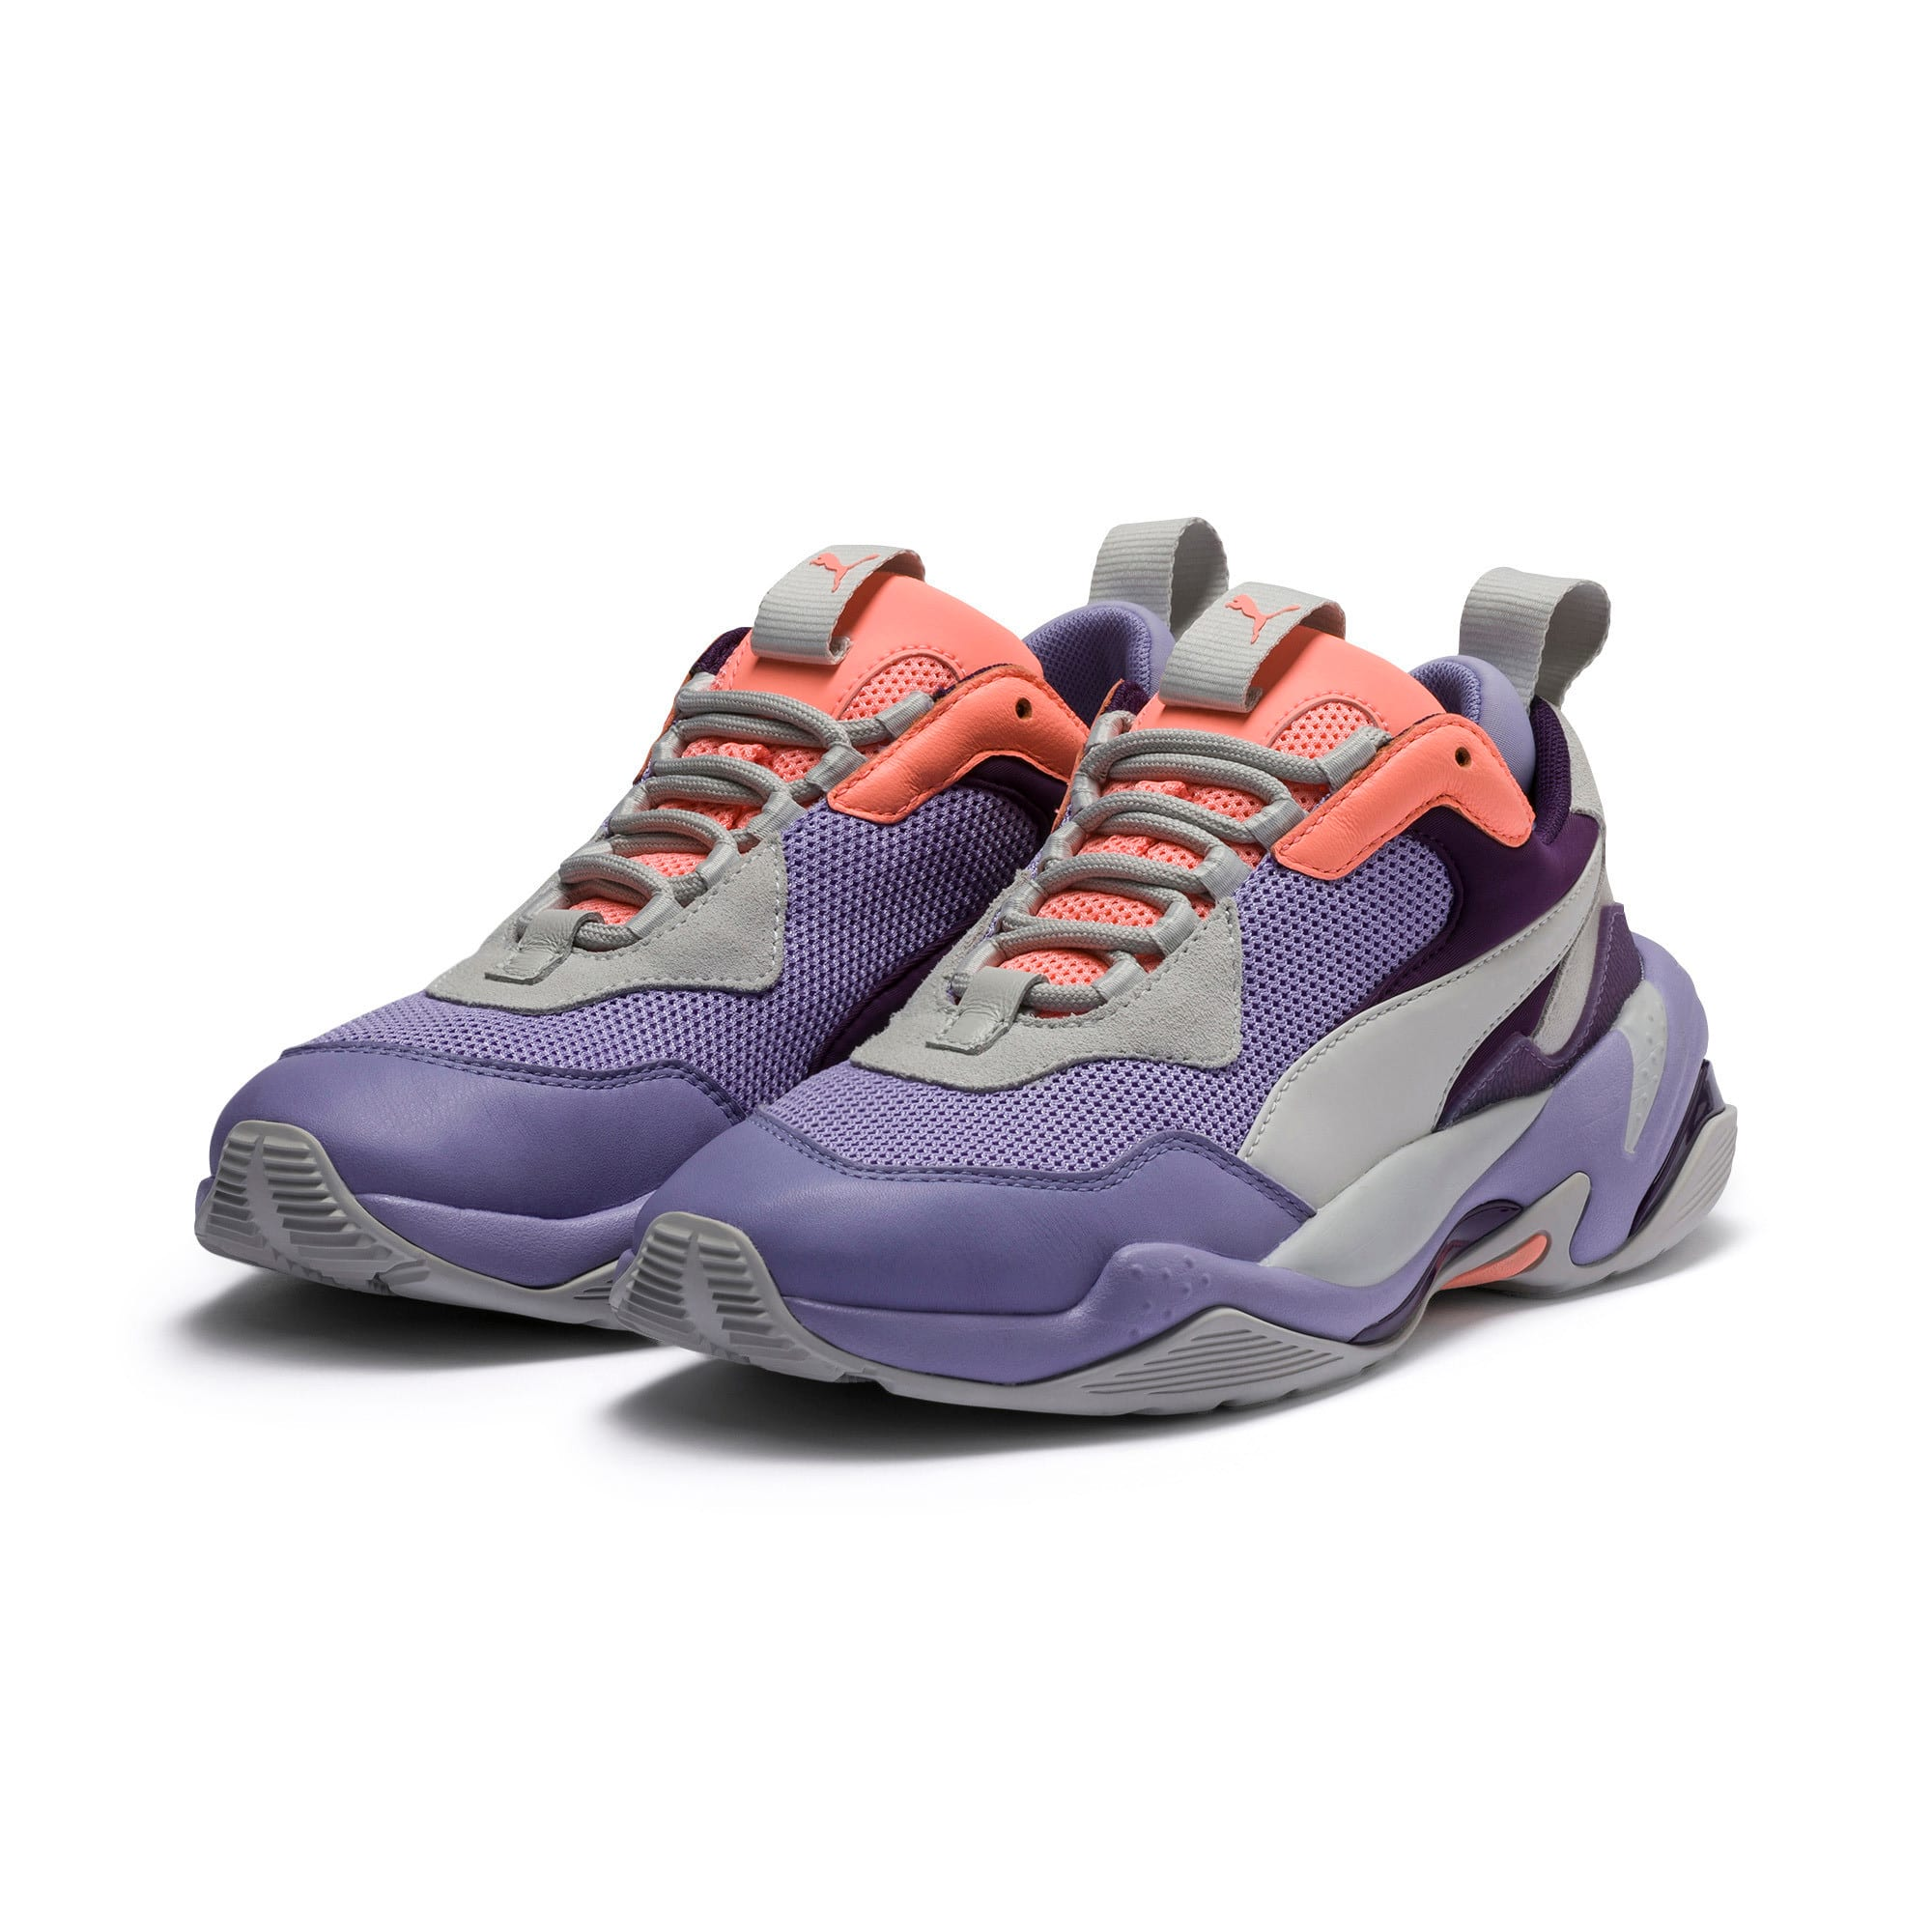 Thunder Spectra Sneaker, Sweet Lavender-Bright Peach, large